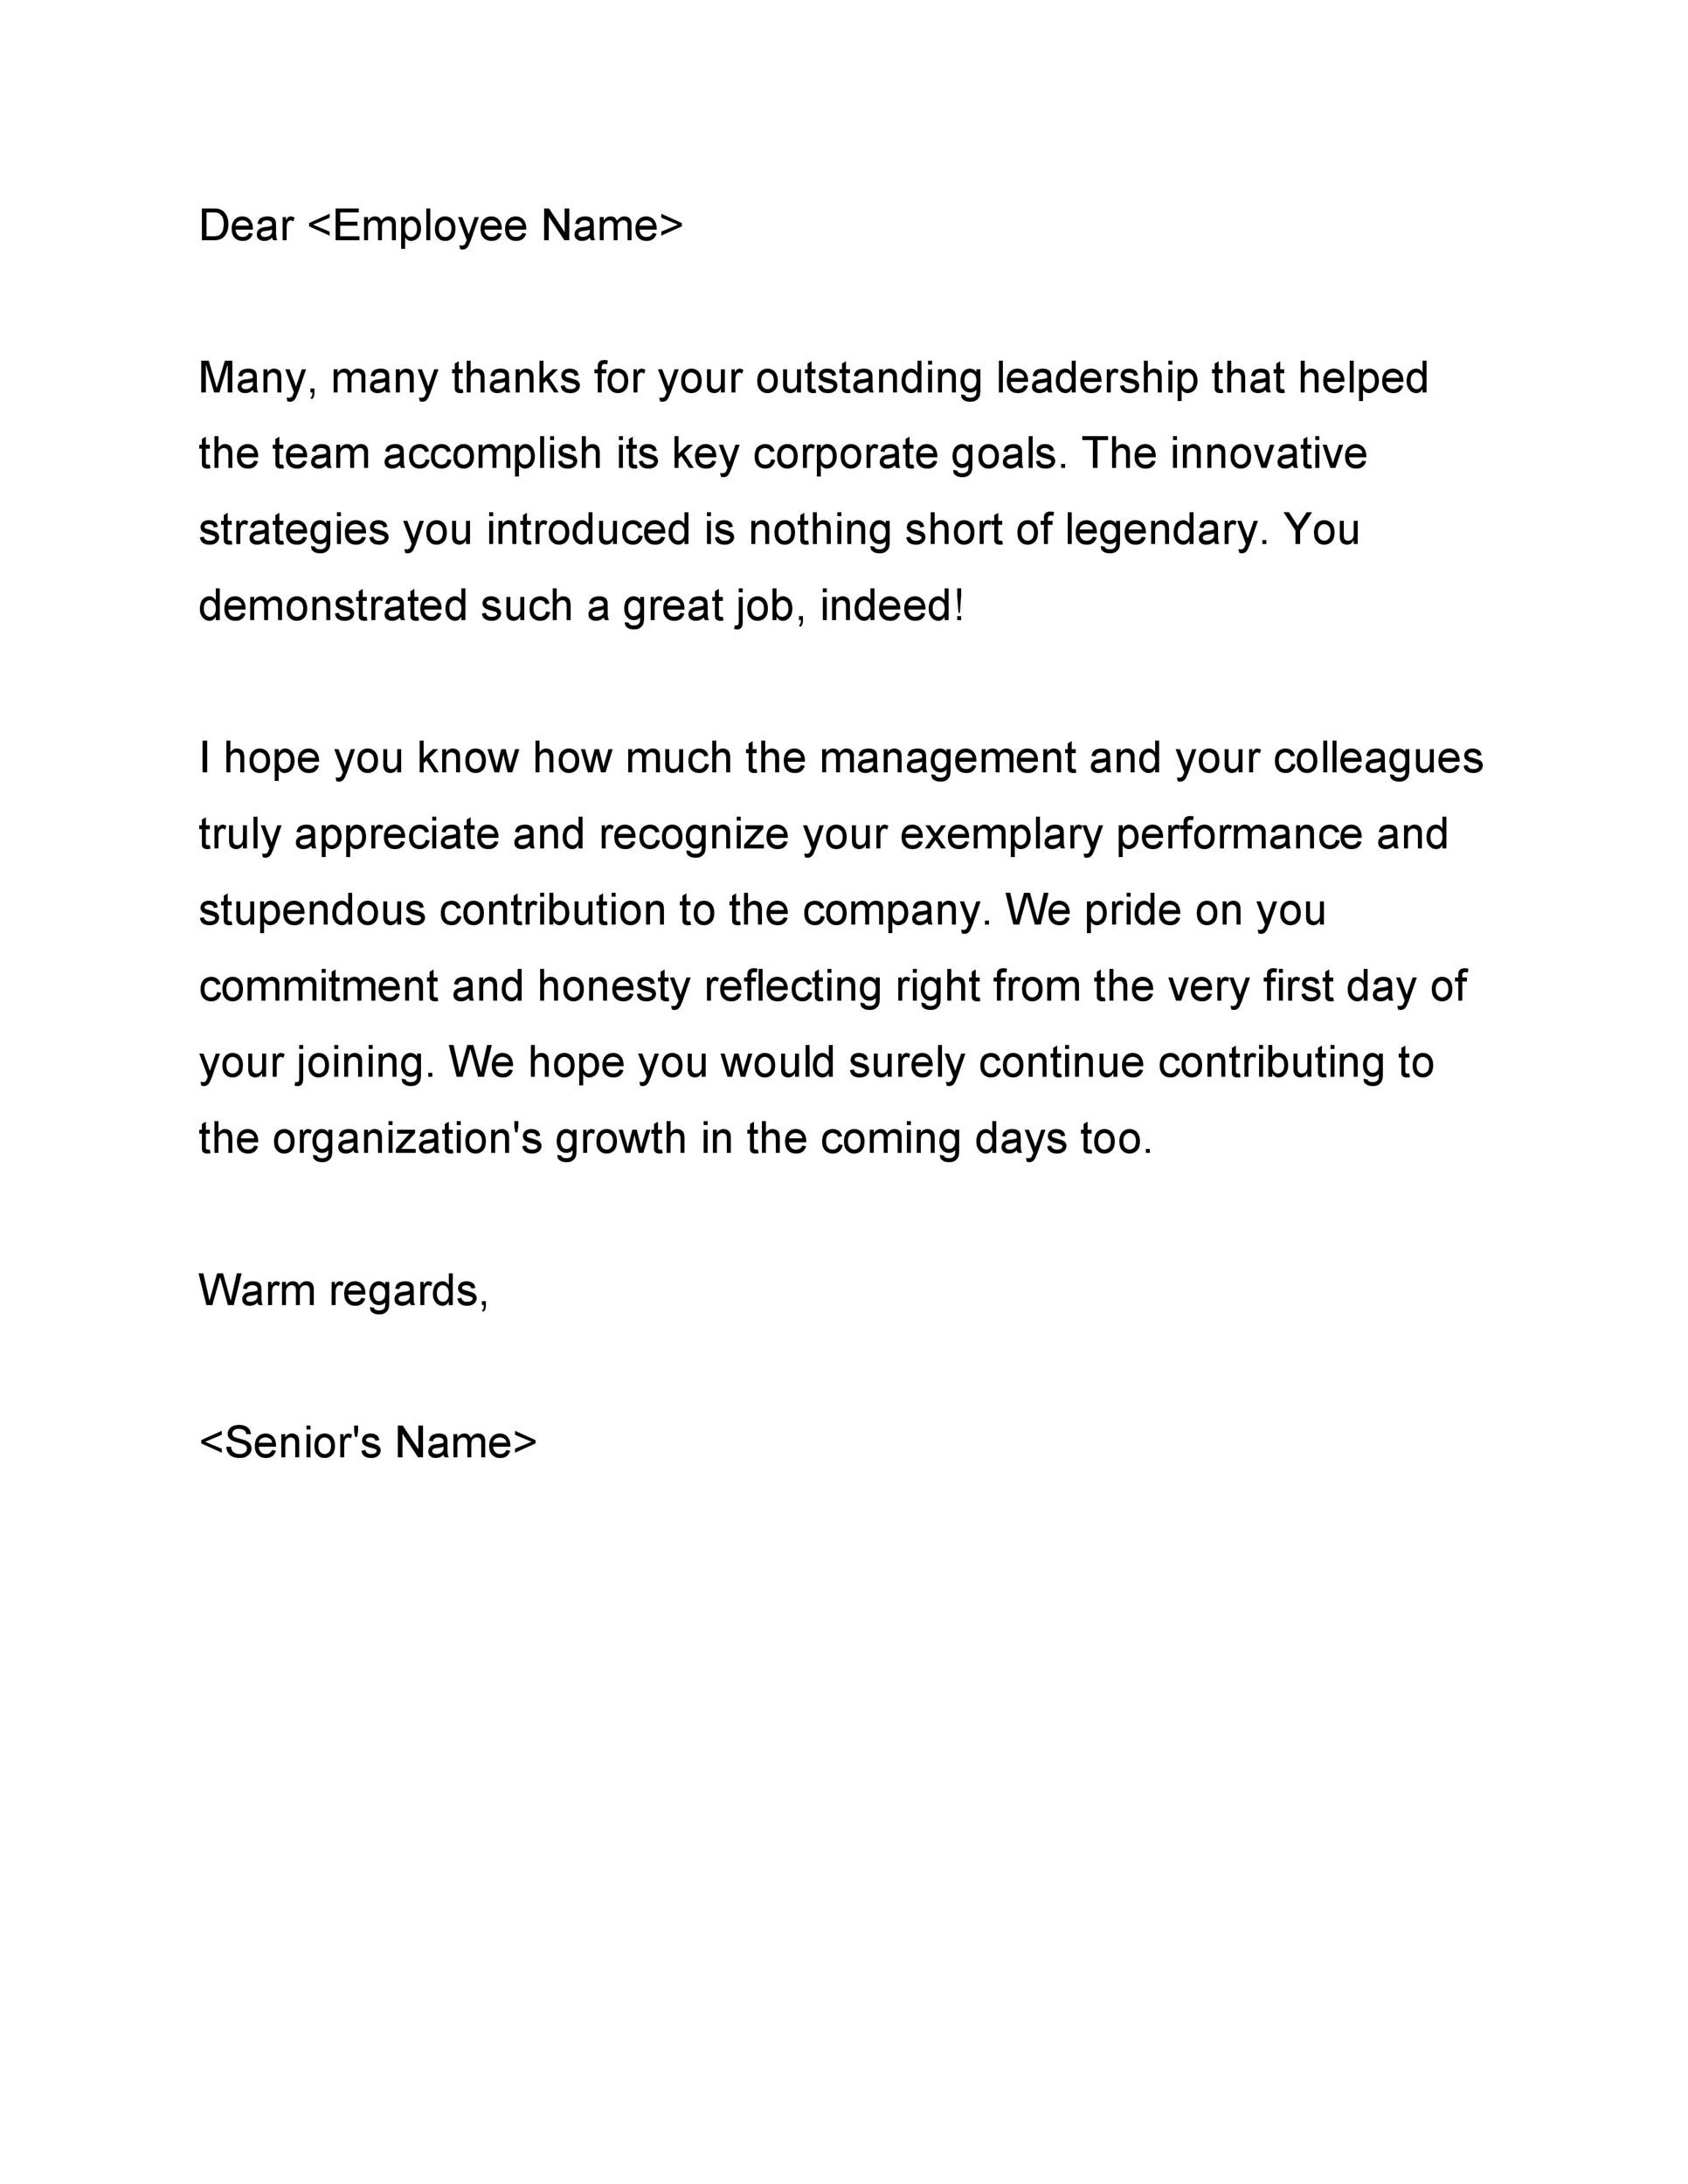 Free recognition letter 50